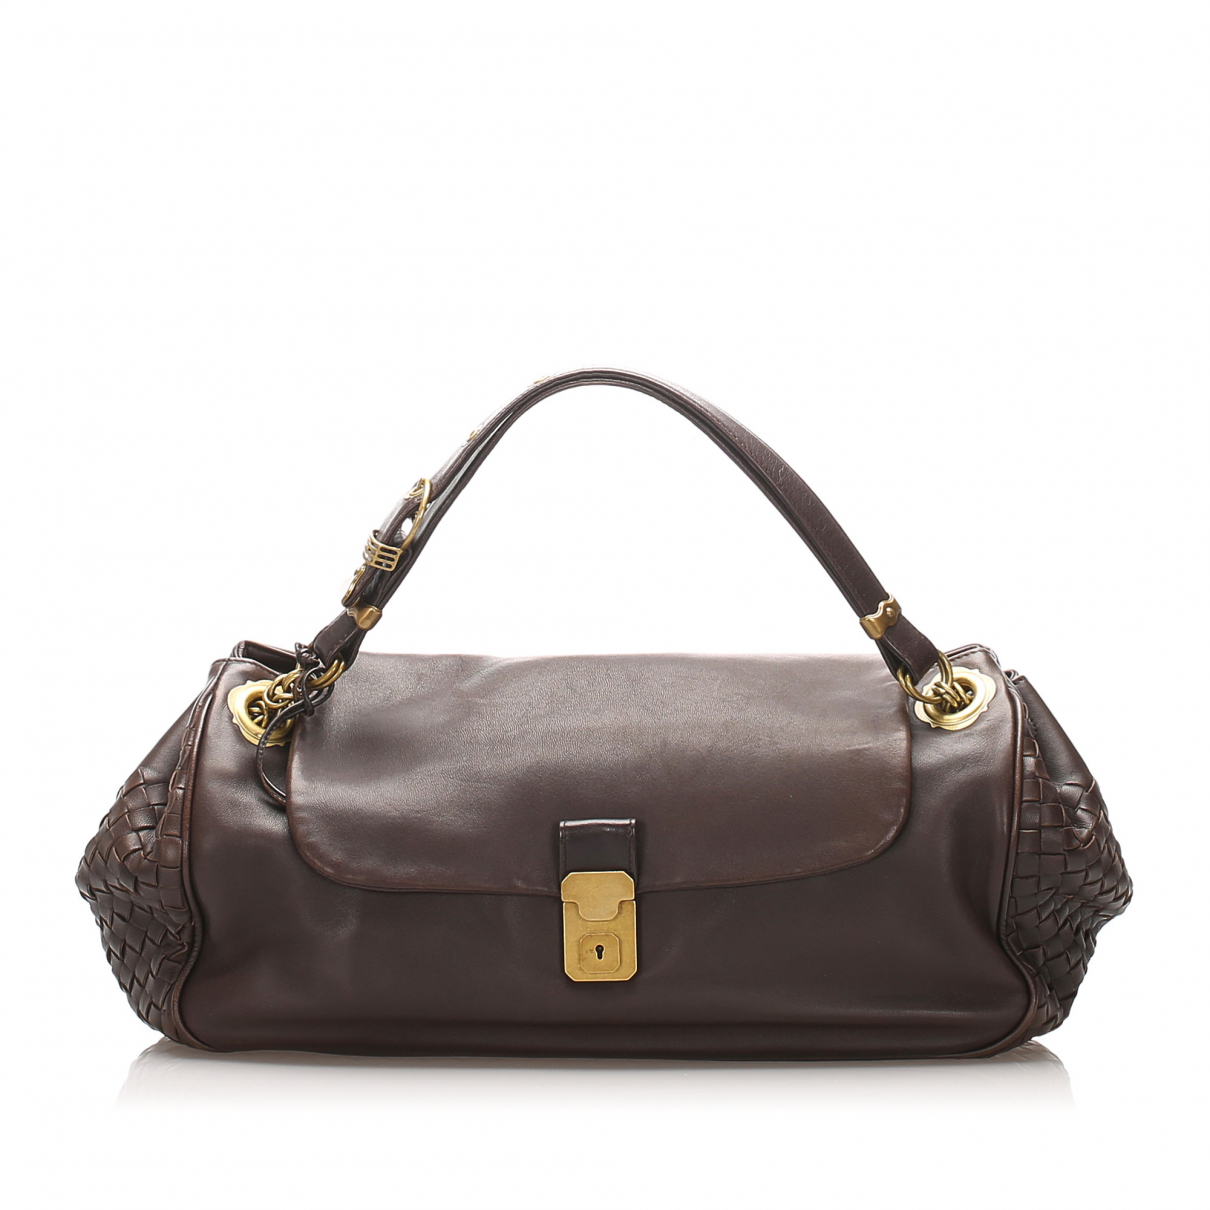 Bottega Veneta N Black Leather handbag for Women N